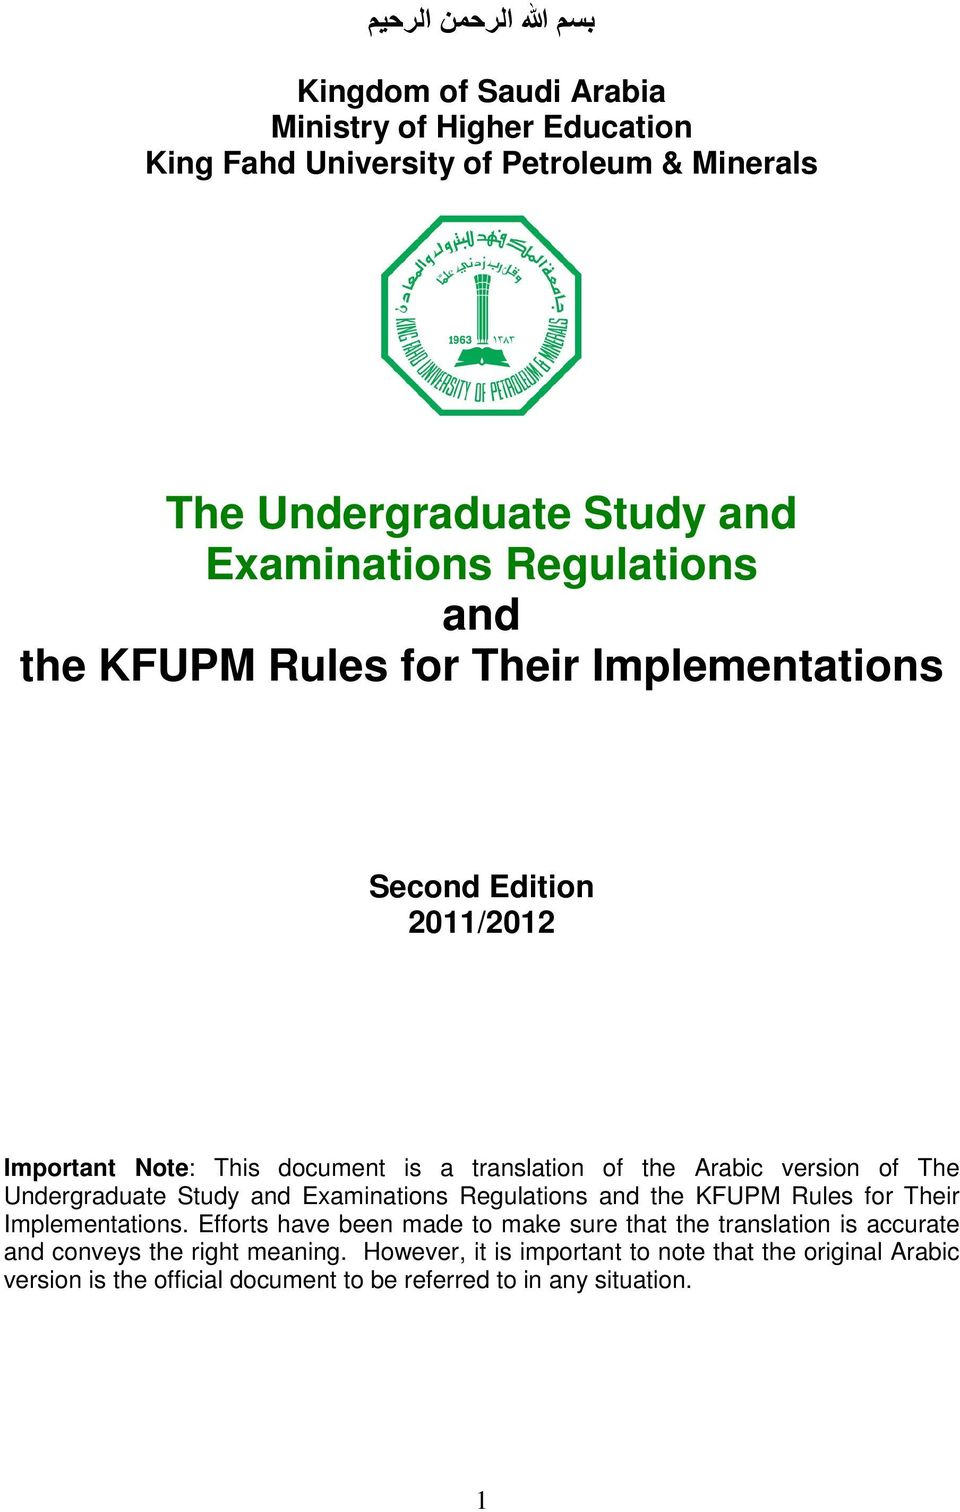 Undergraduate Study and Examinations Regulations and the KFUPM Rules for Their Implementations.